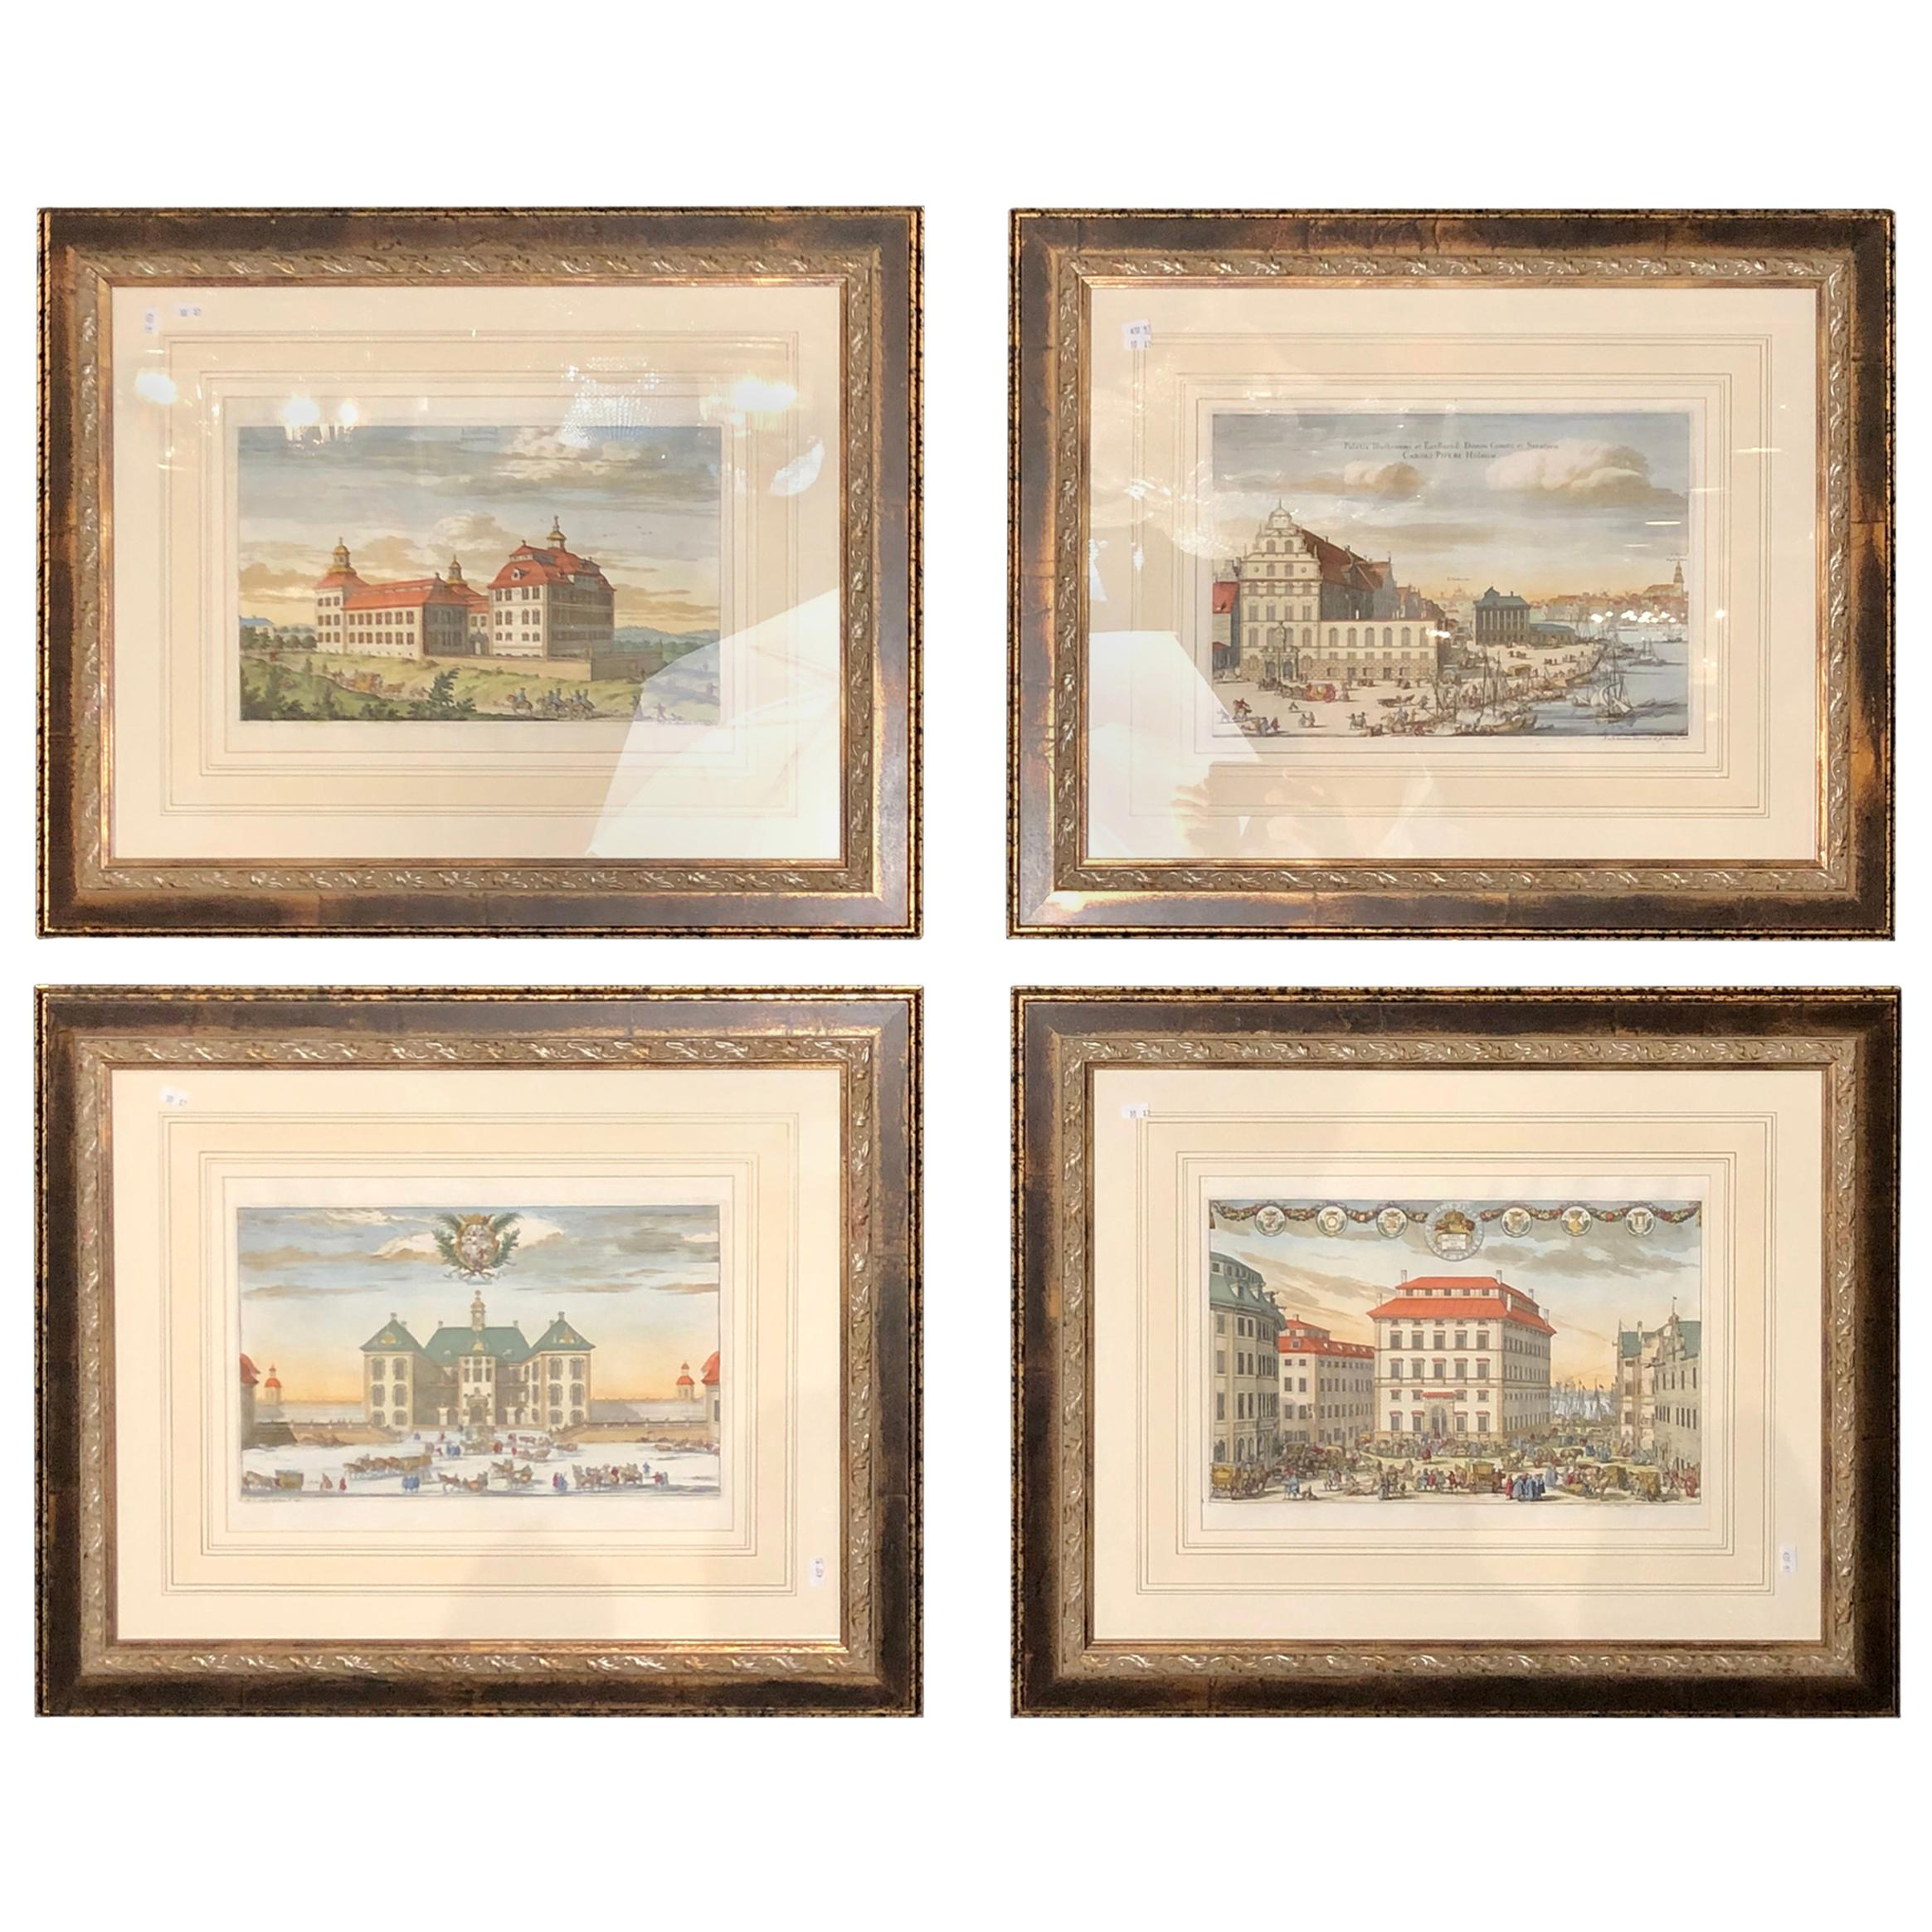 Set of Four Finely Framed and Matted Engravings